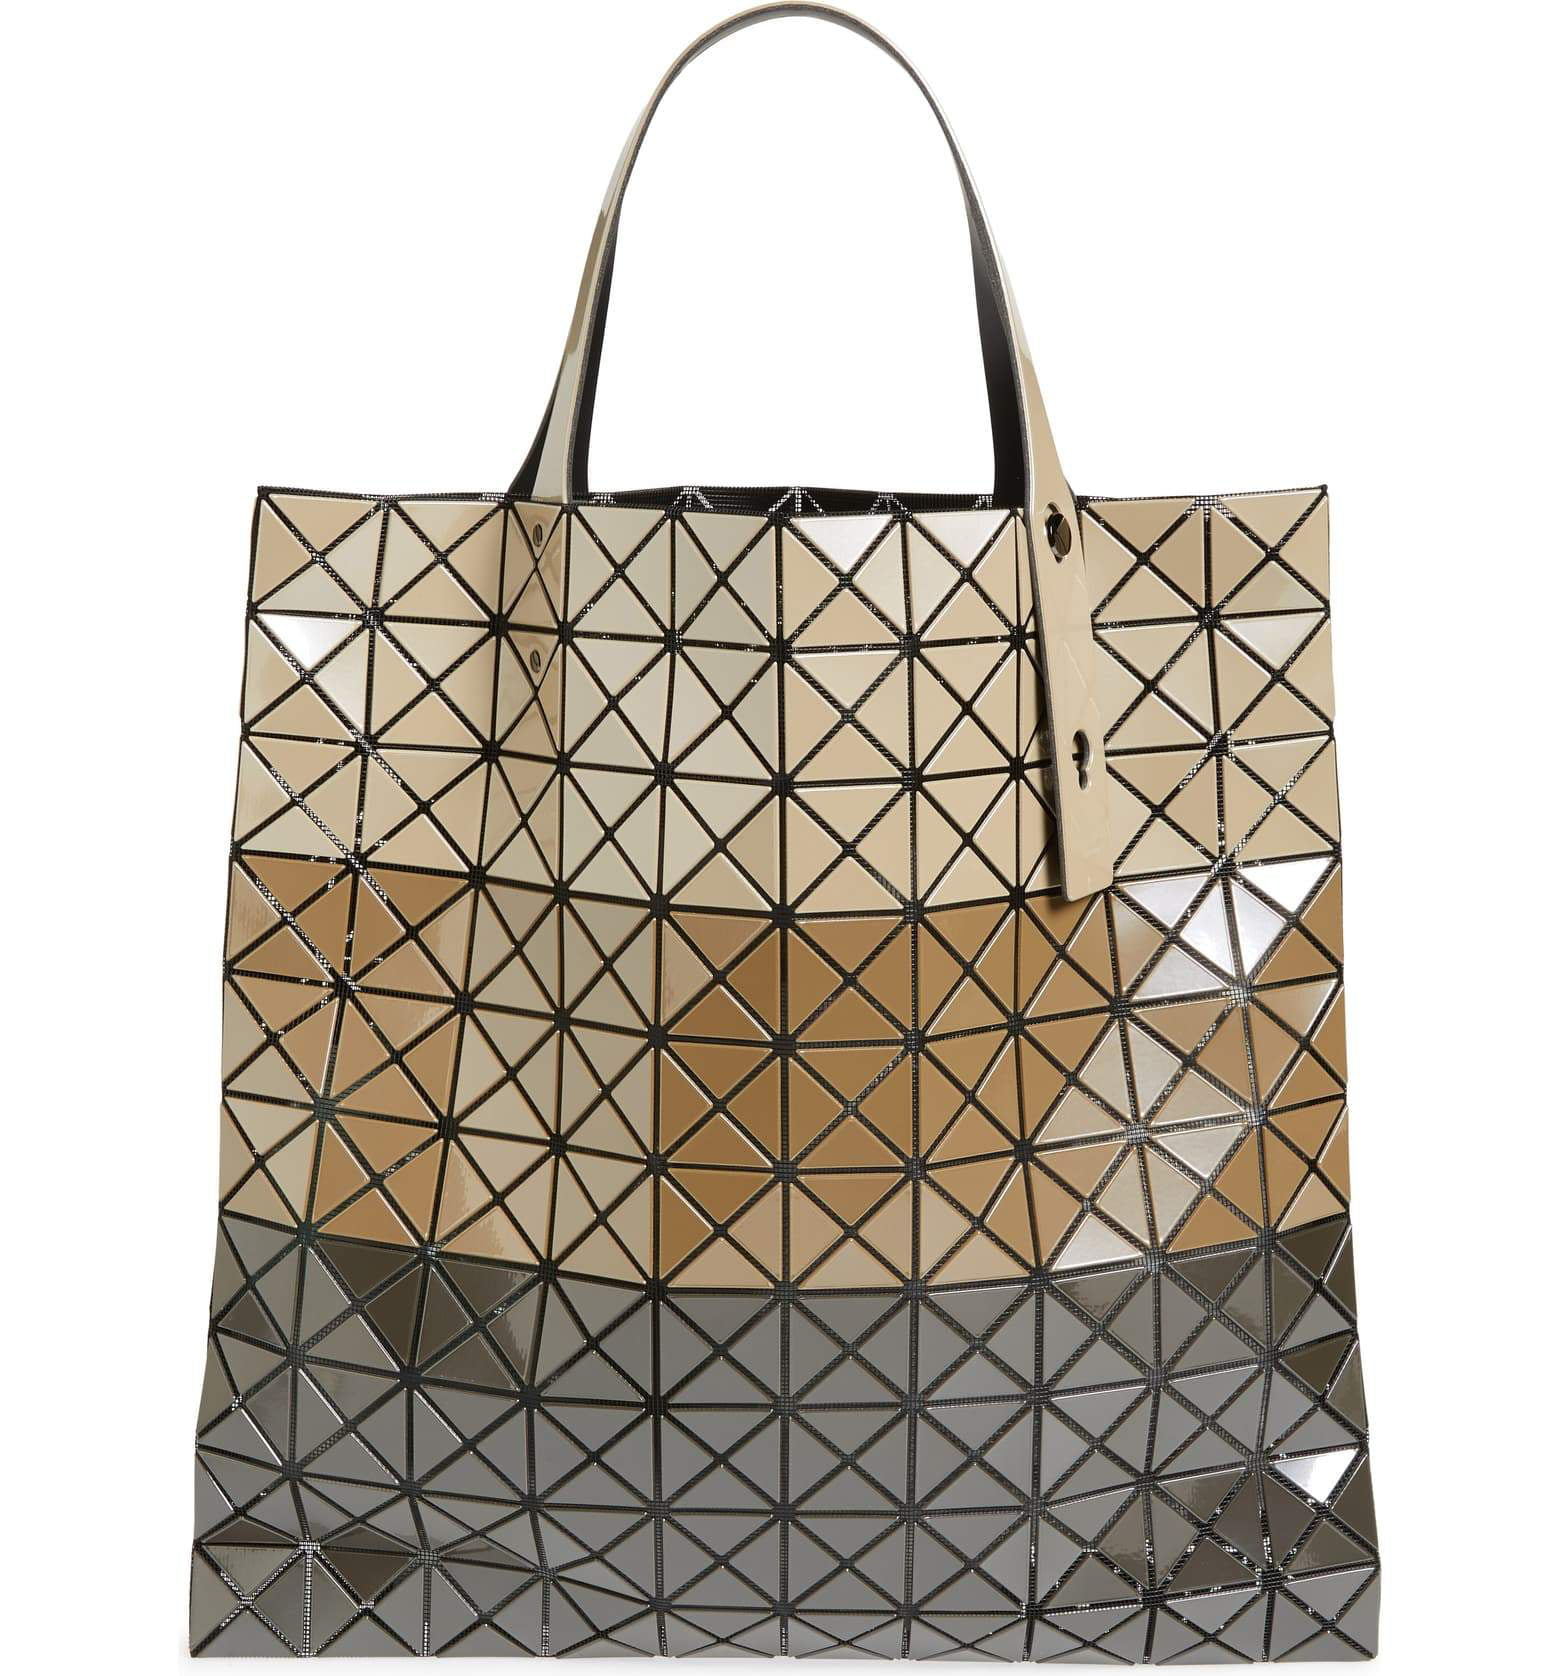 Bao Bao Issey Miyake Prism Large Tote Bag Handbag Japan Color Block Beige New Walmart Com Walmart Com